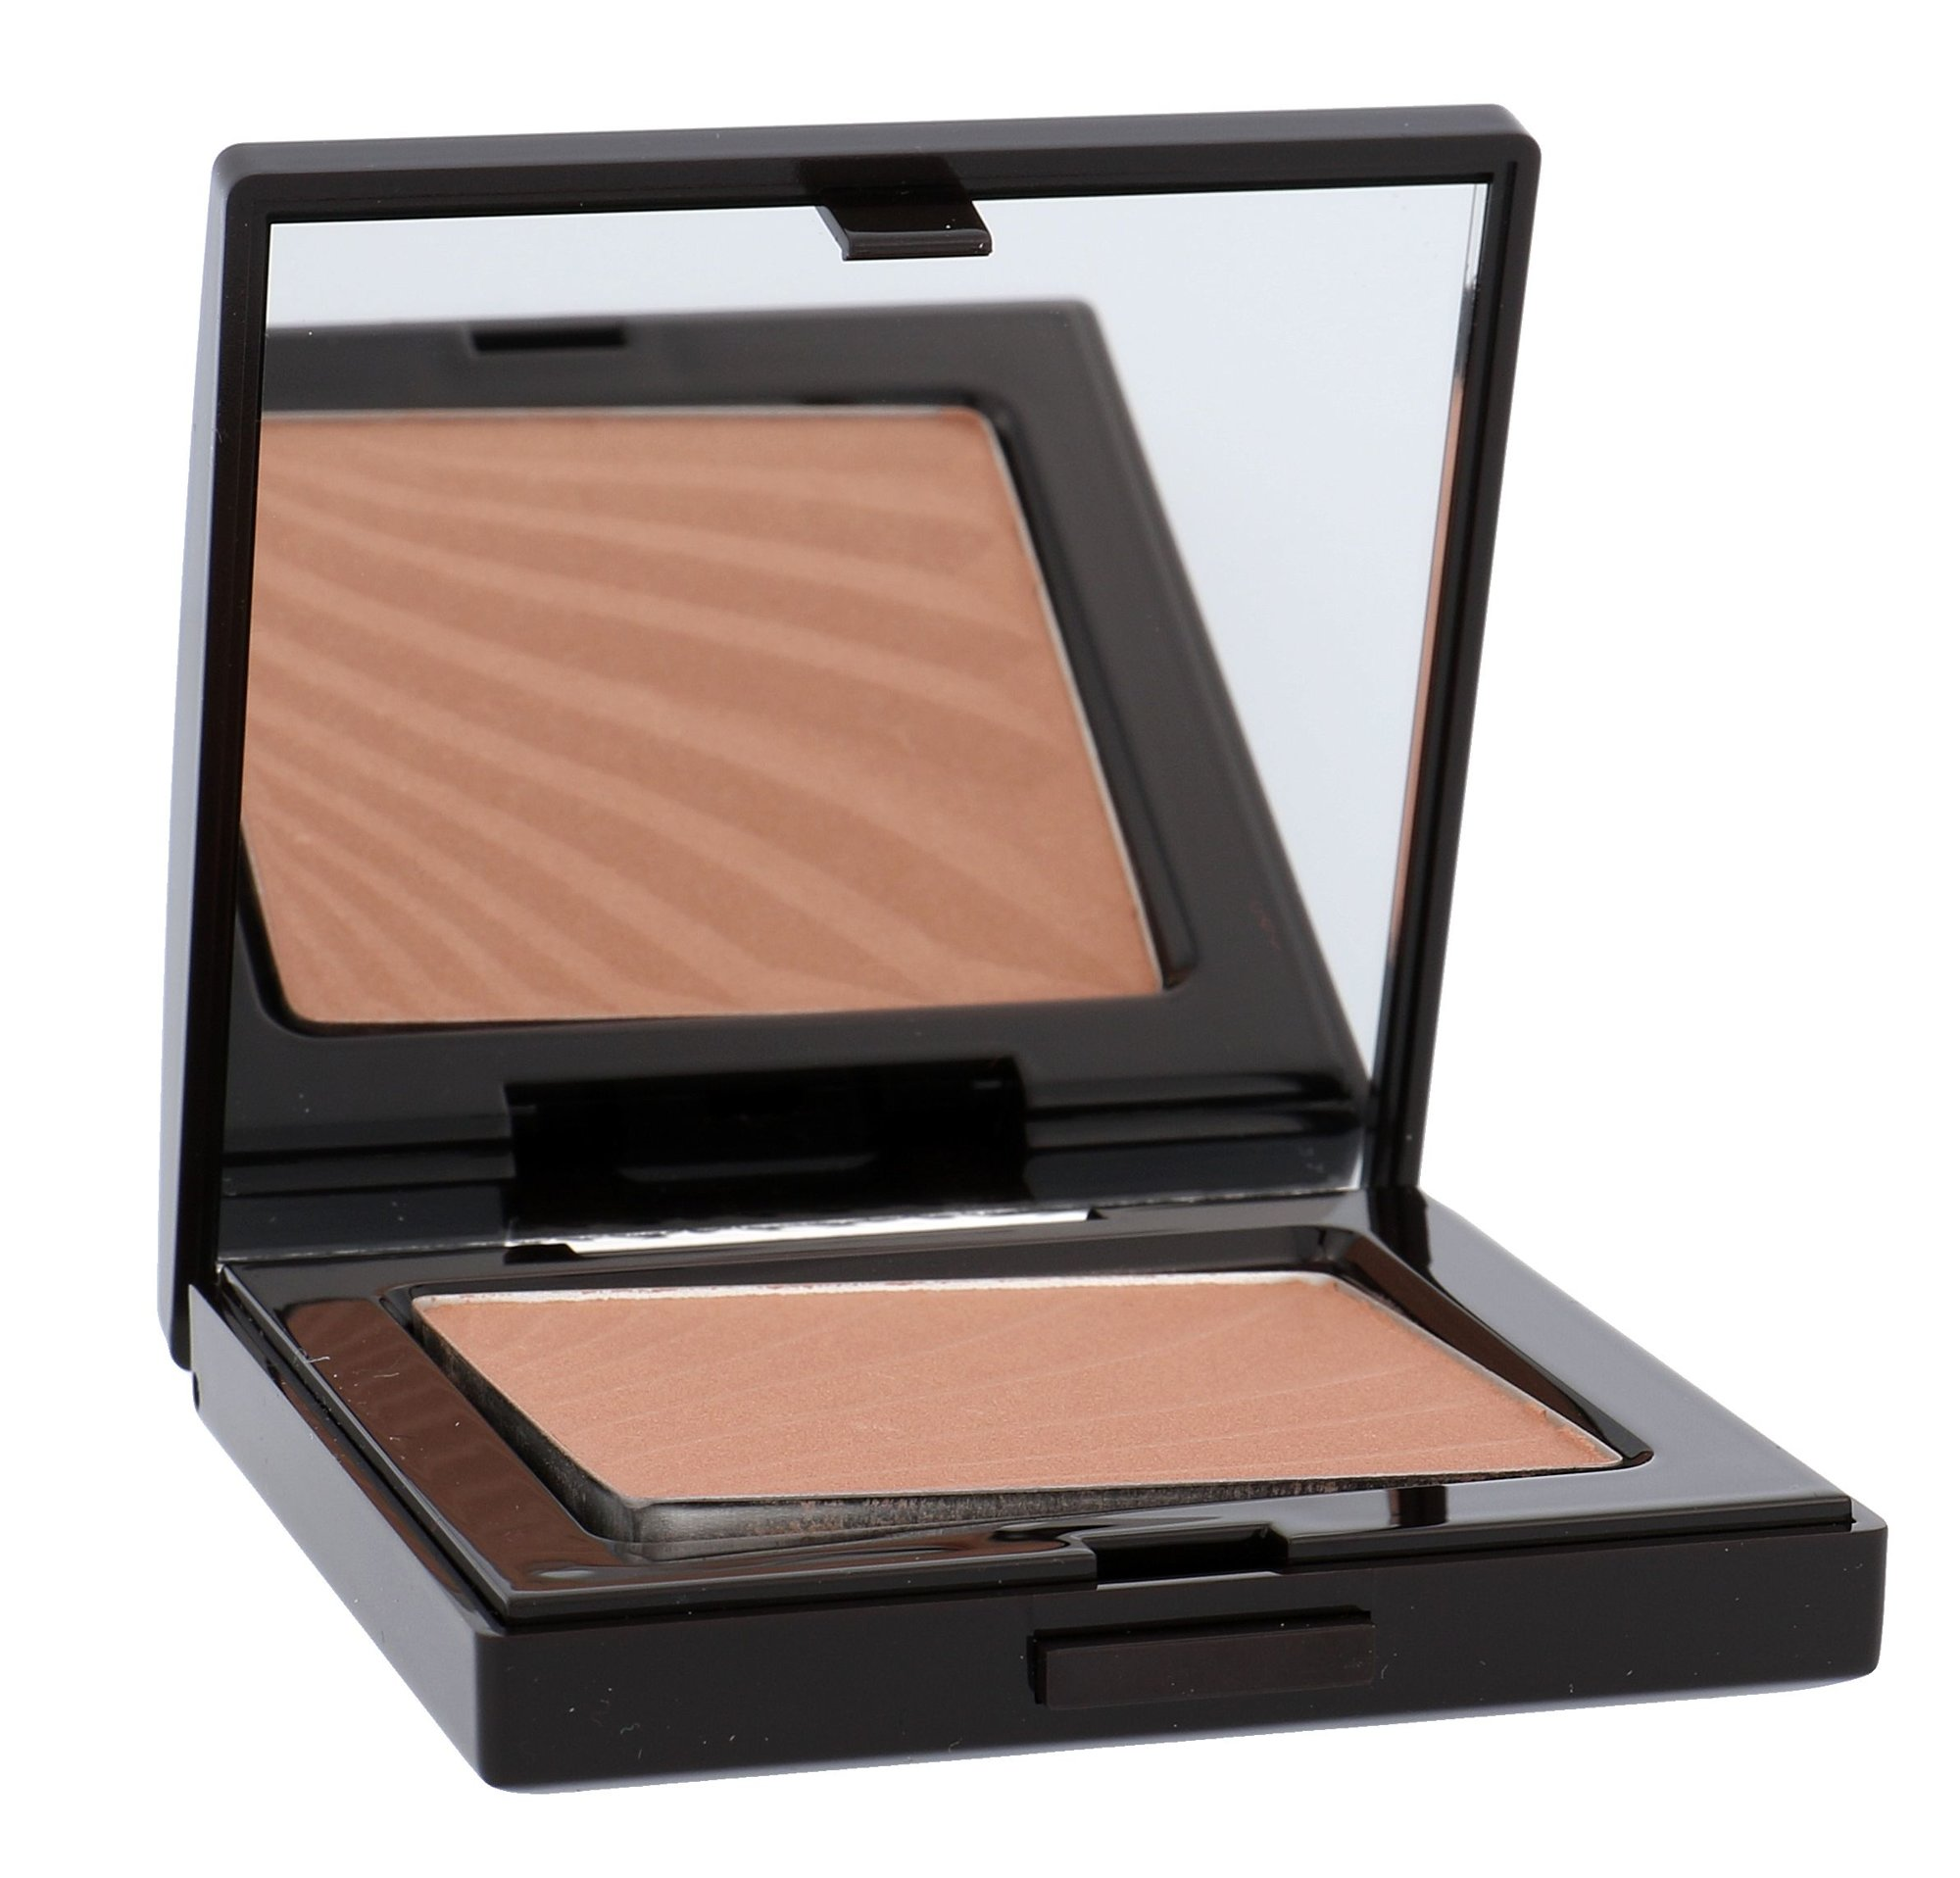 Laura Mercier Bronzing Pressed Powder Cosmetic 8ml Golden Bronze